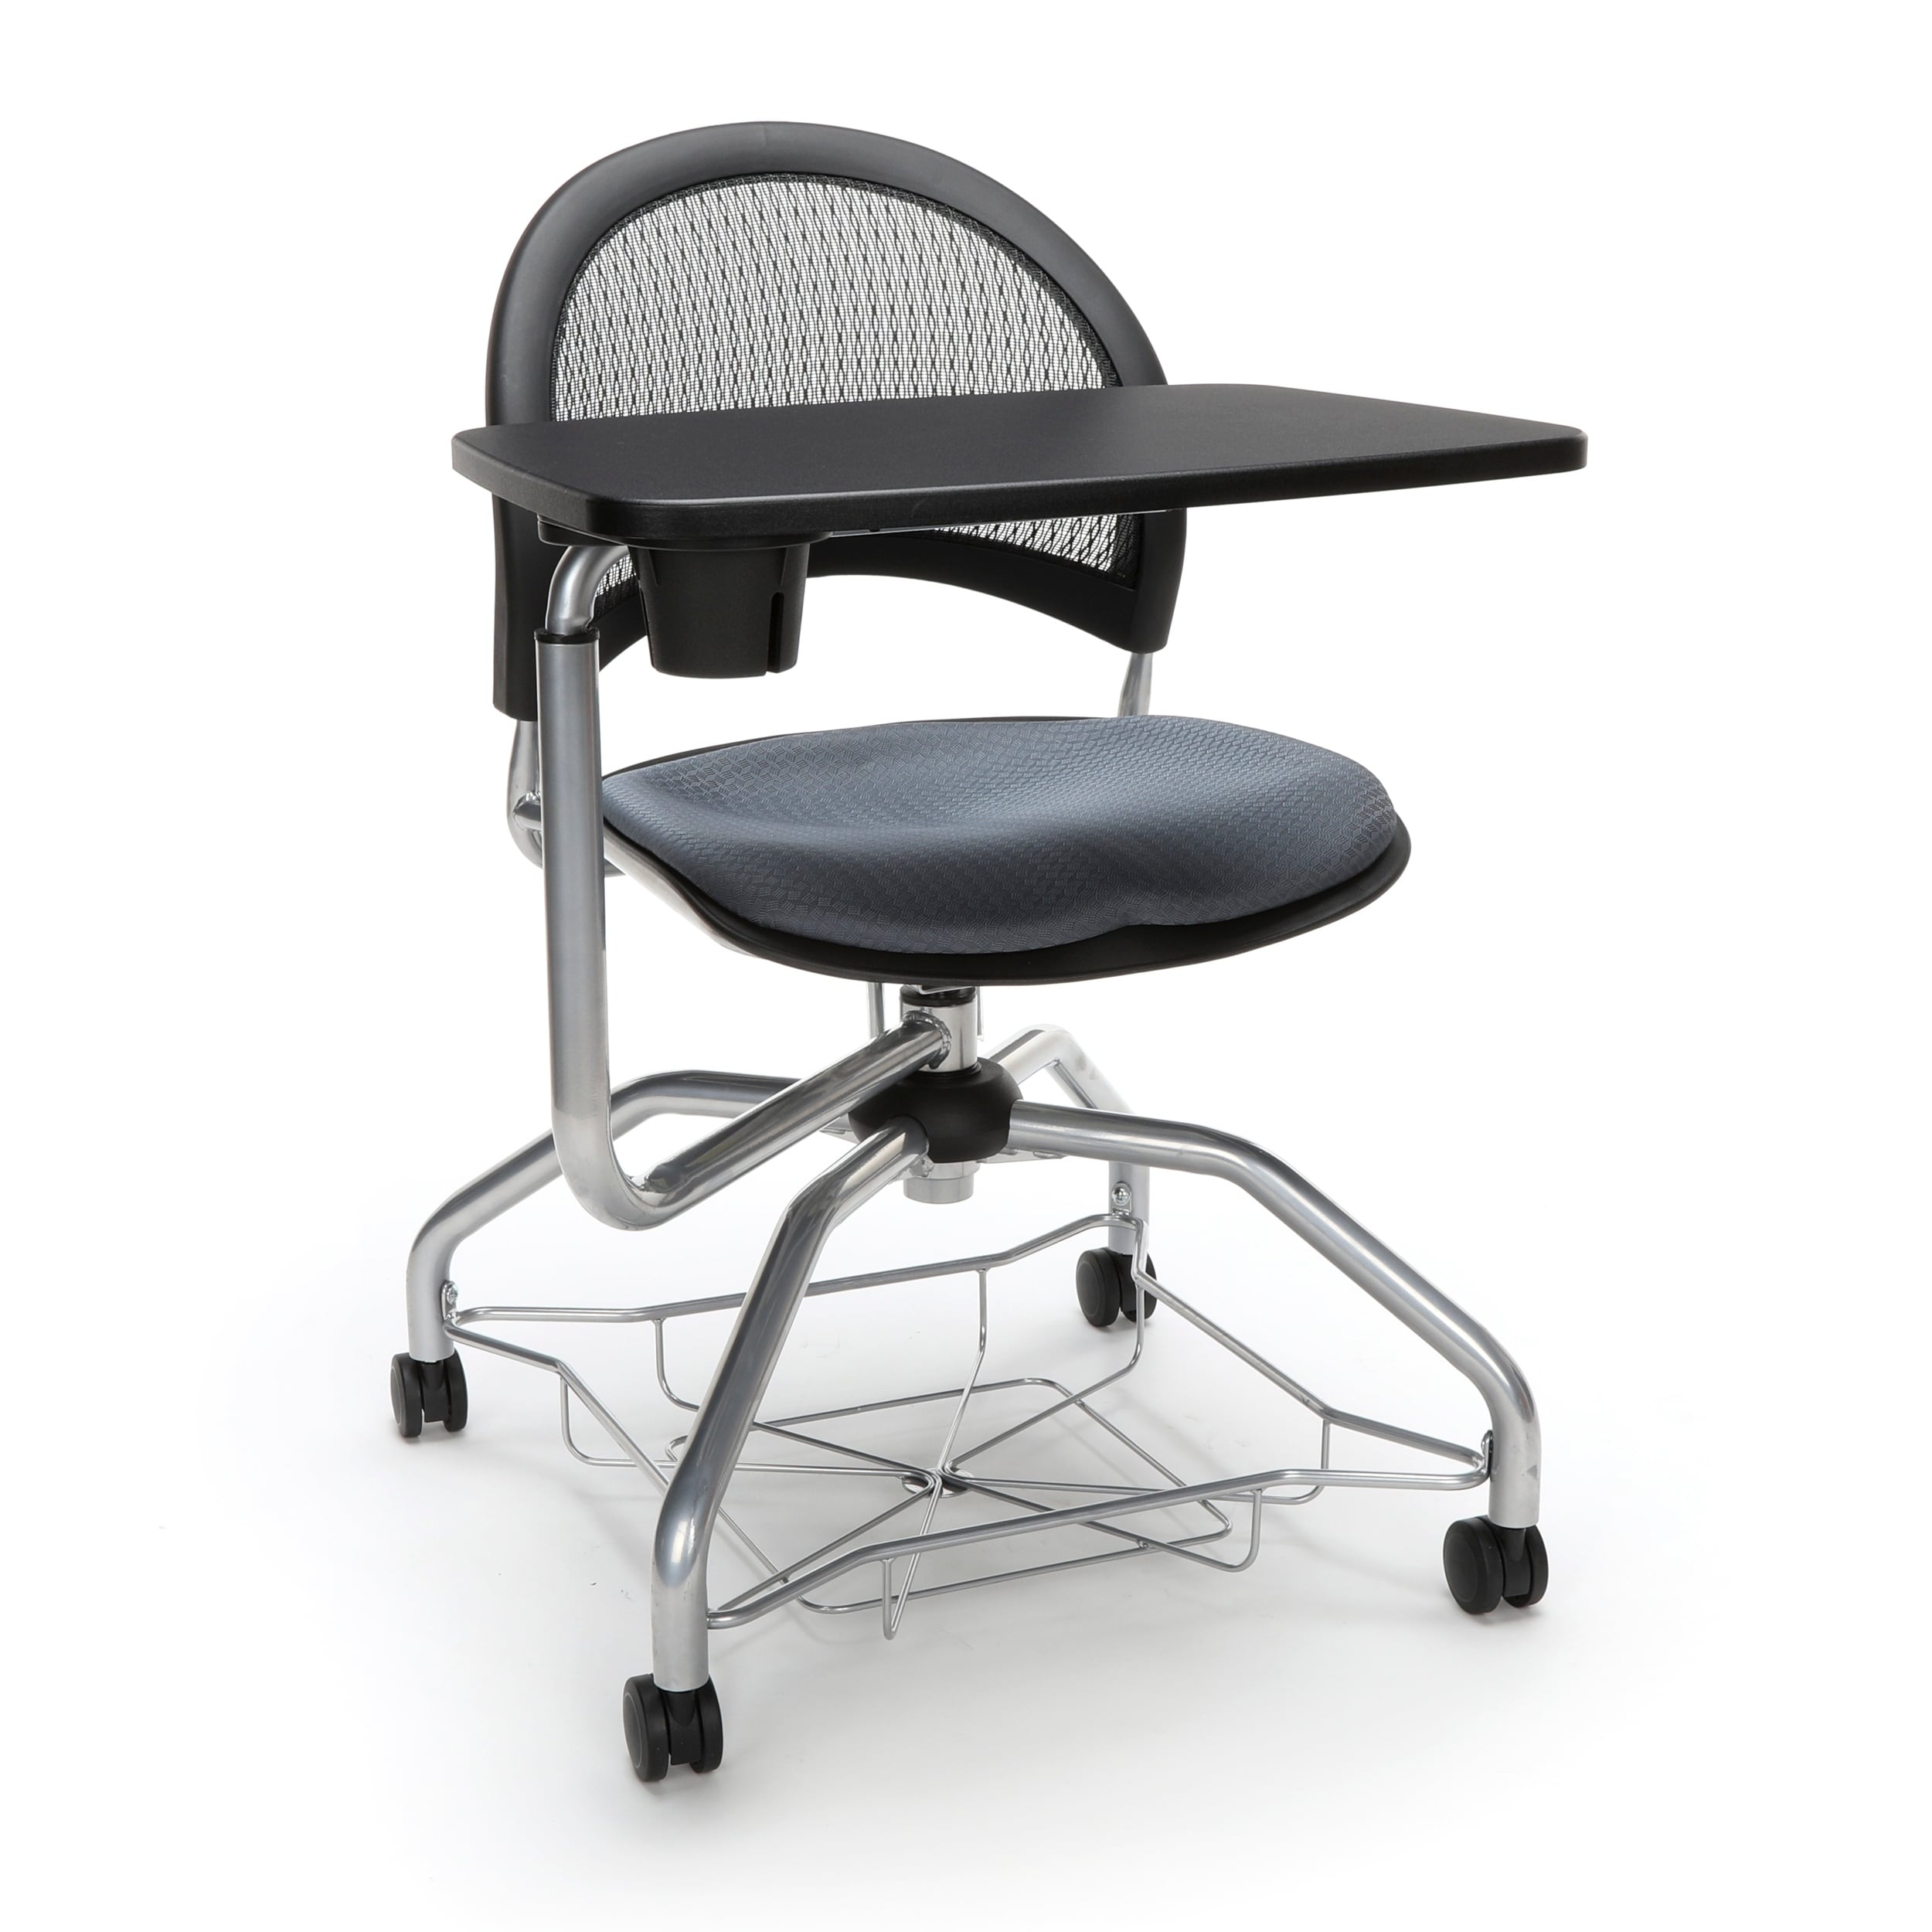 Desk Seat Ofm Moon Foresee Series Tablet Chair With Removable Seat Cushion Student Desk Chair 339t